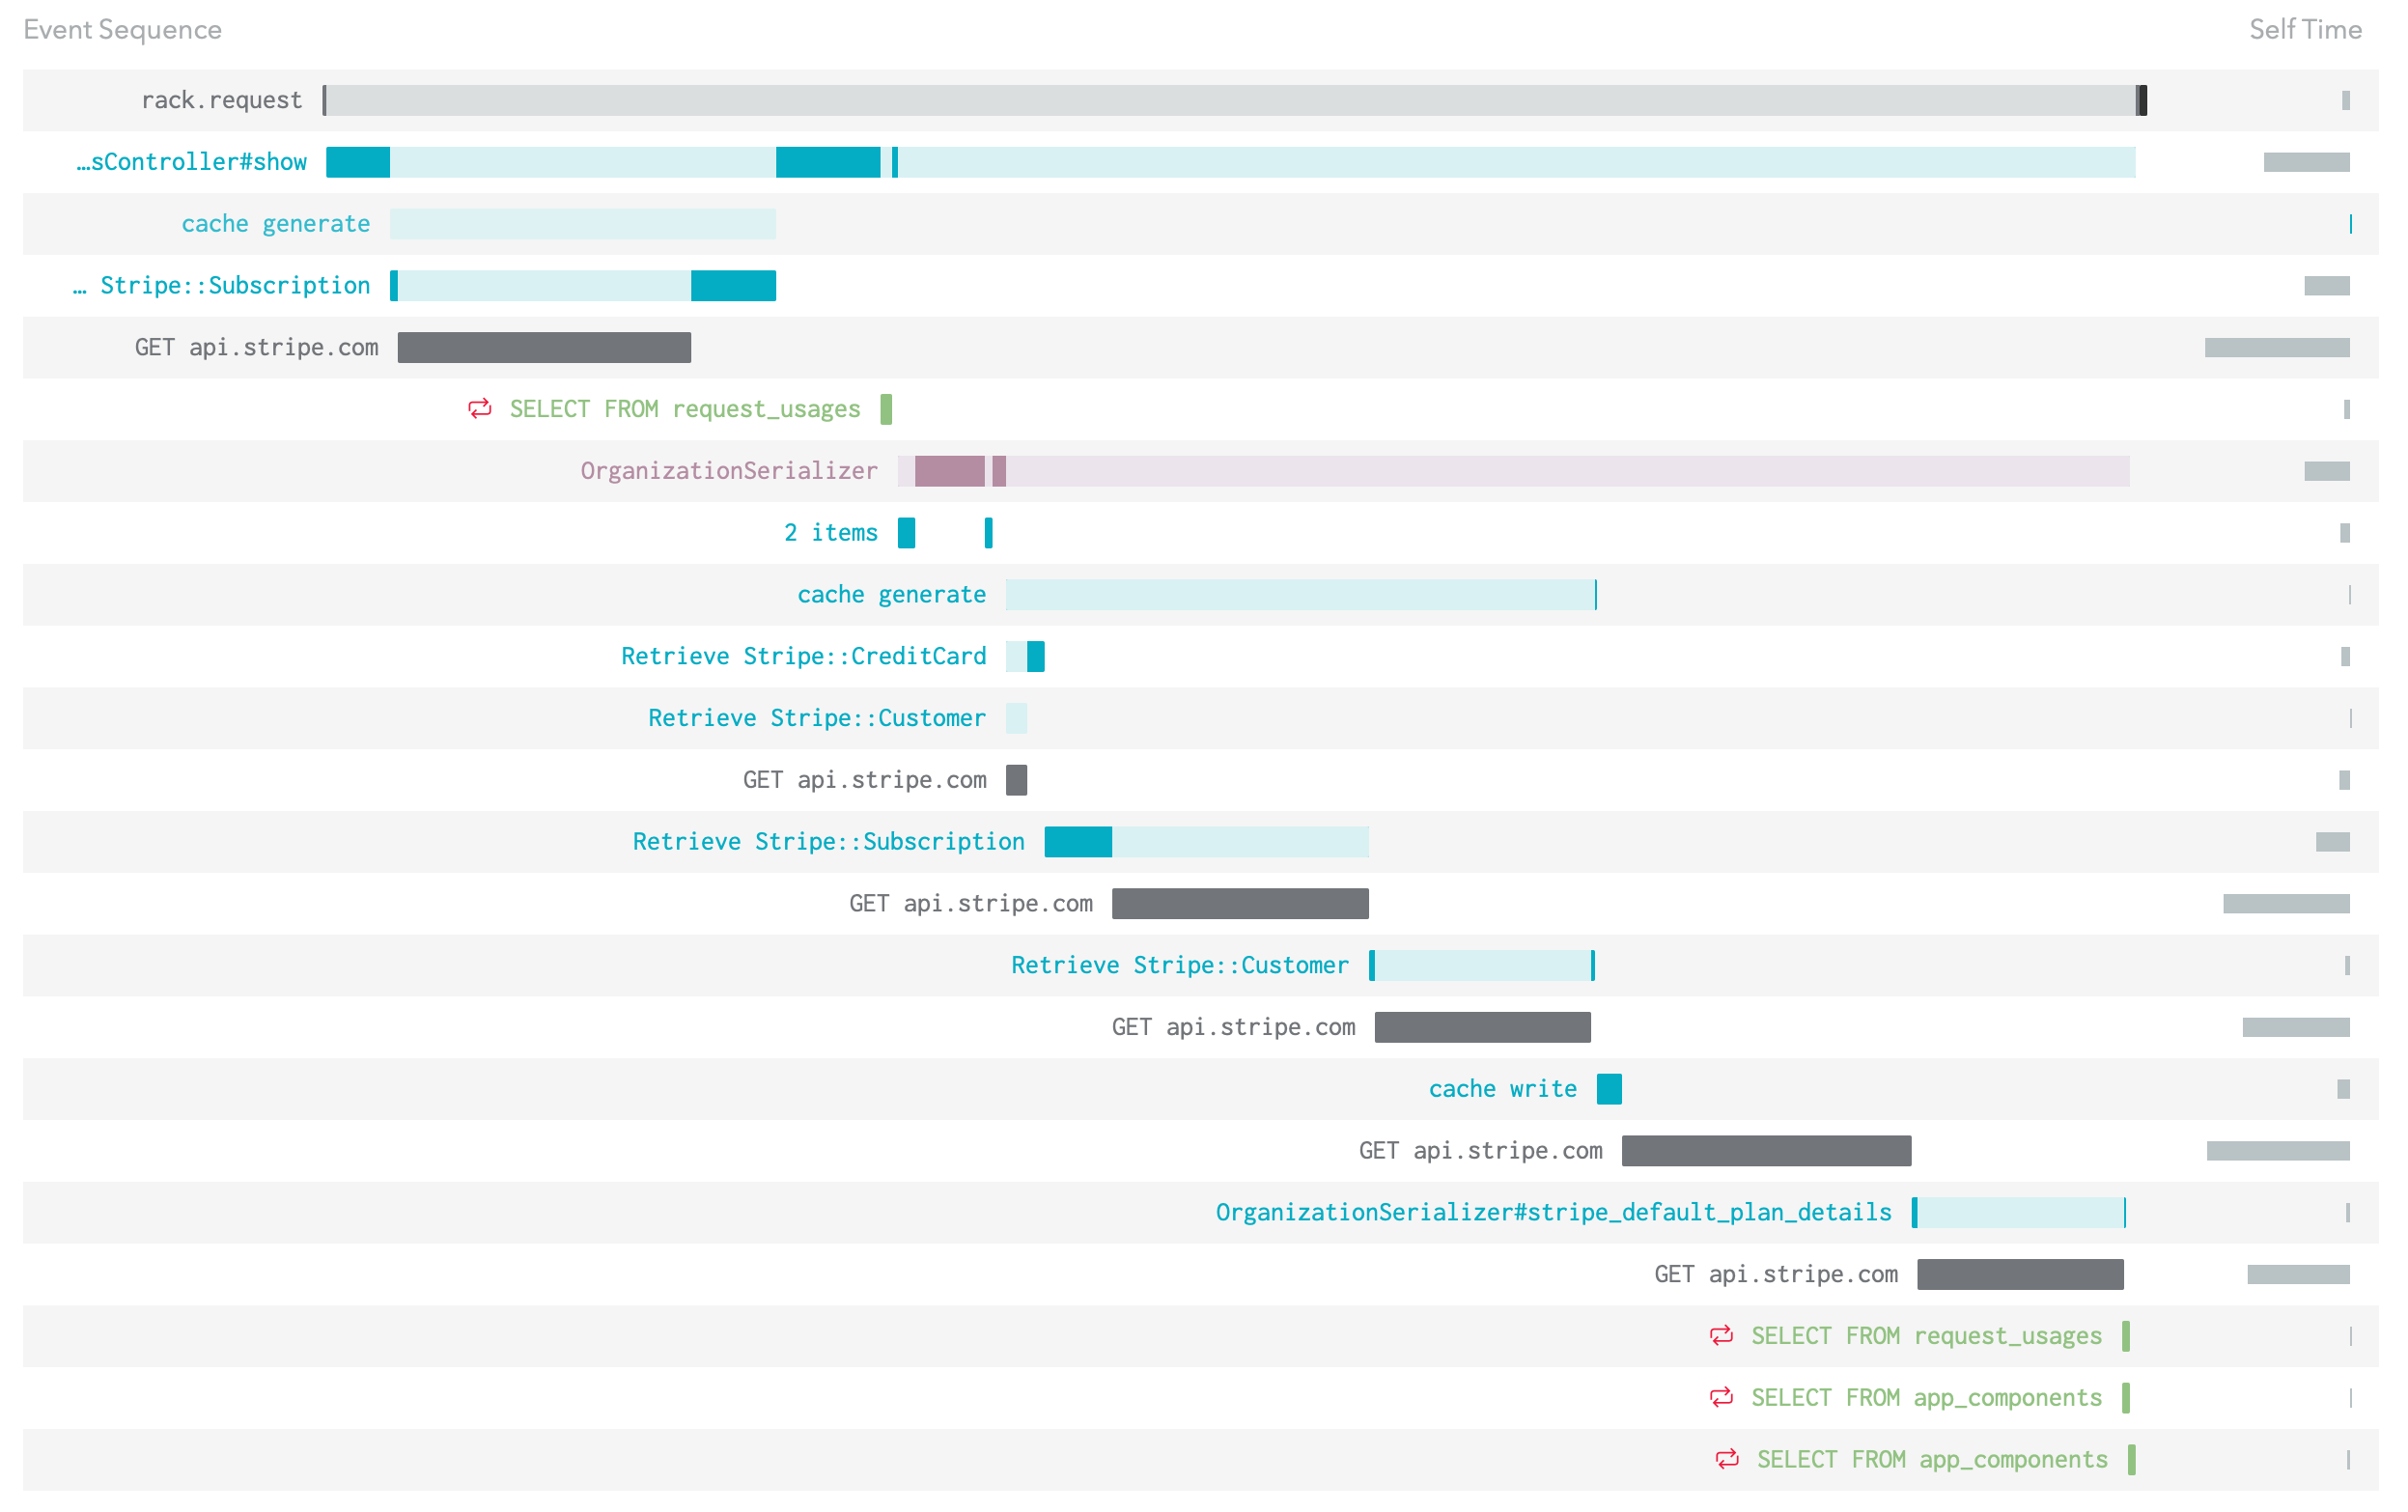 An event sequence with a number of different slow calls to api.stripe.com wrapped in additional instrumentation